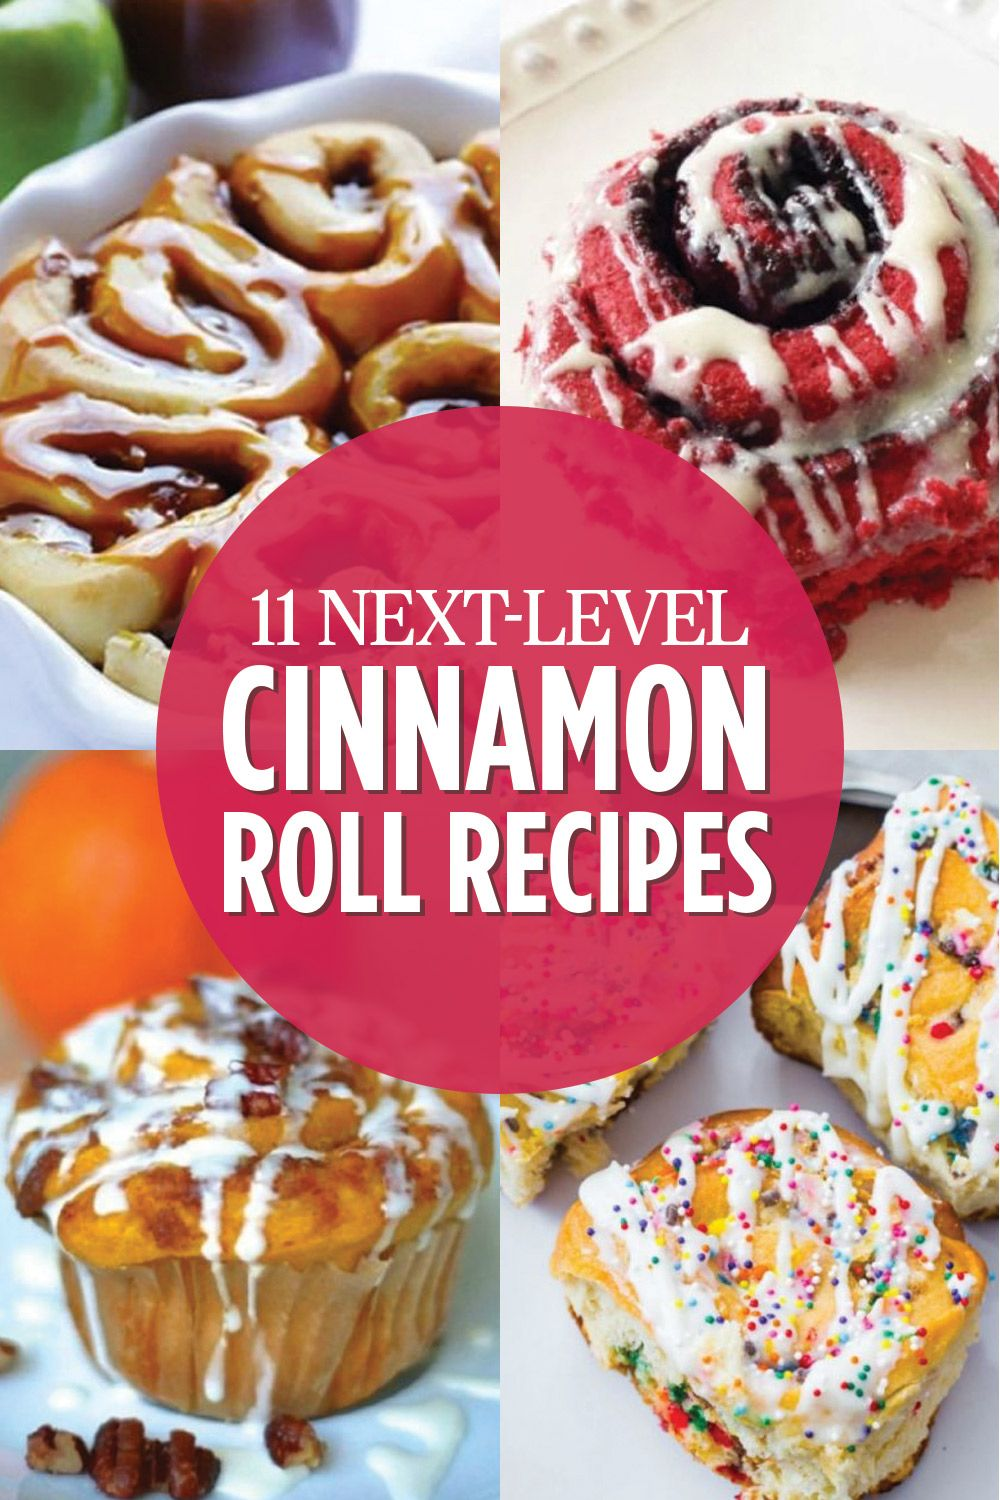 11 Cinnamon Roll Recipes That Make Getting Out of Bed Worth It